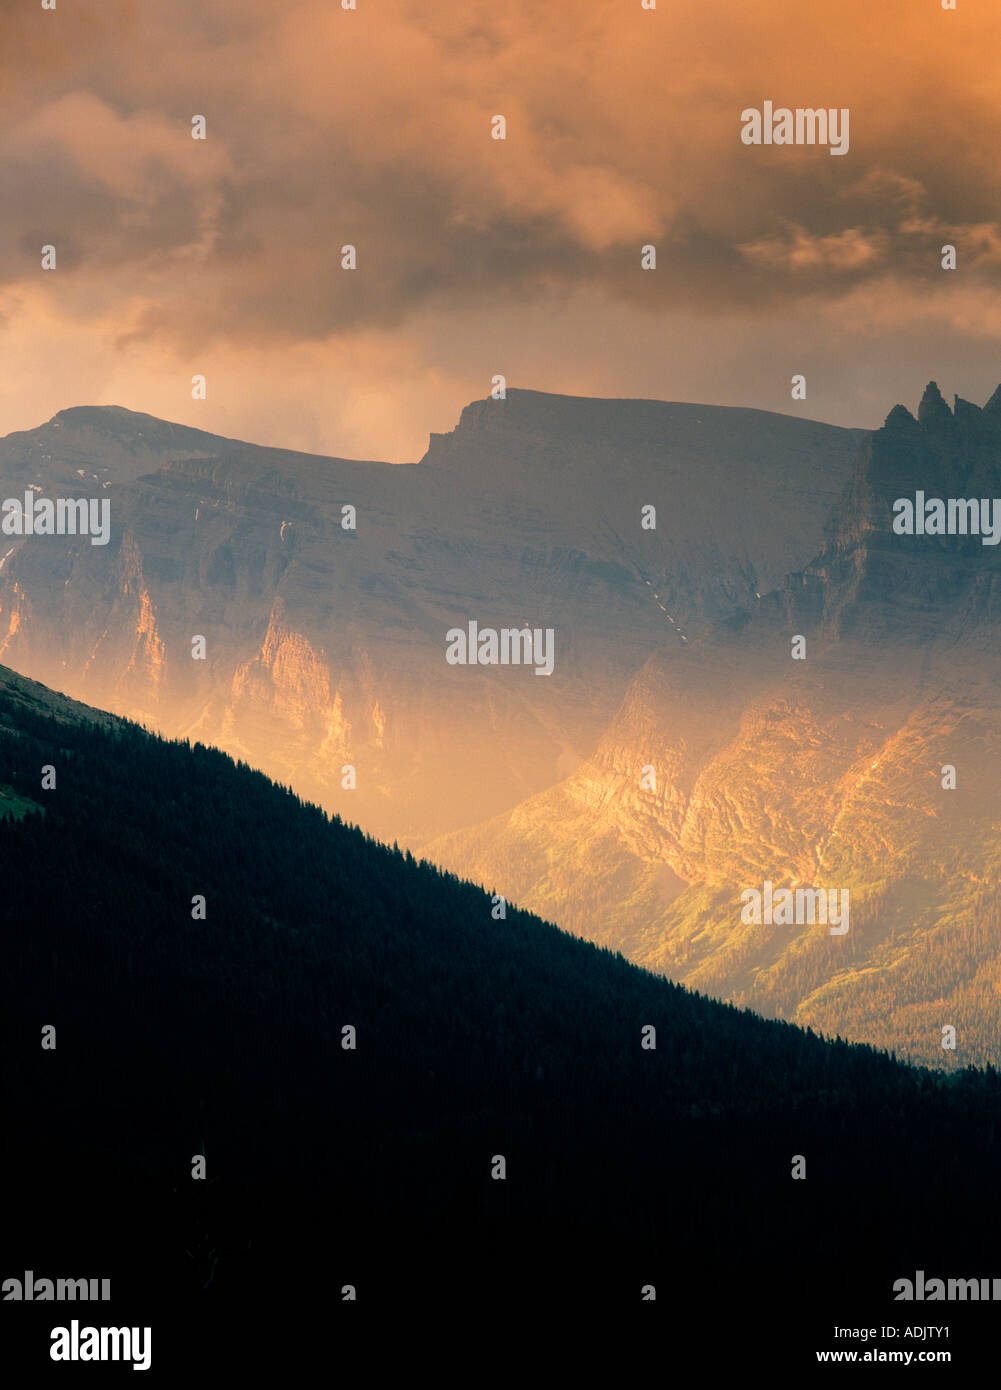 Soleil nuages peeking through et brillant sur les montagnes du Parc National des Glaciers du Montana Photo Stock